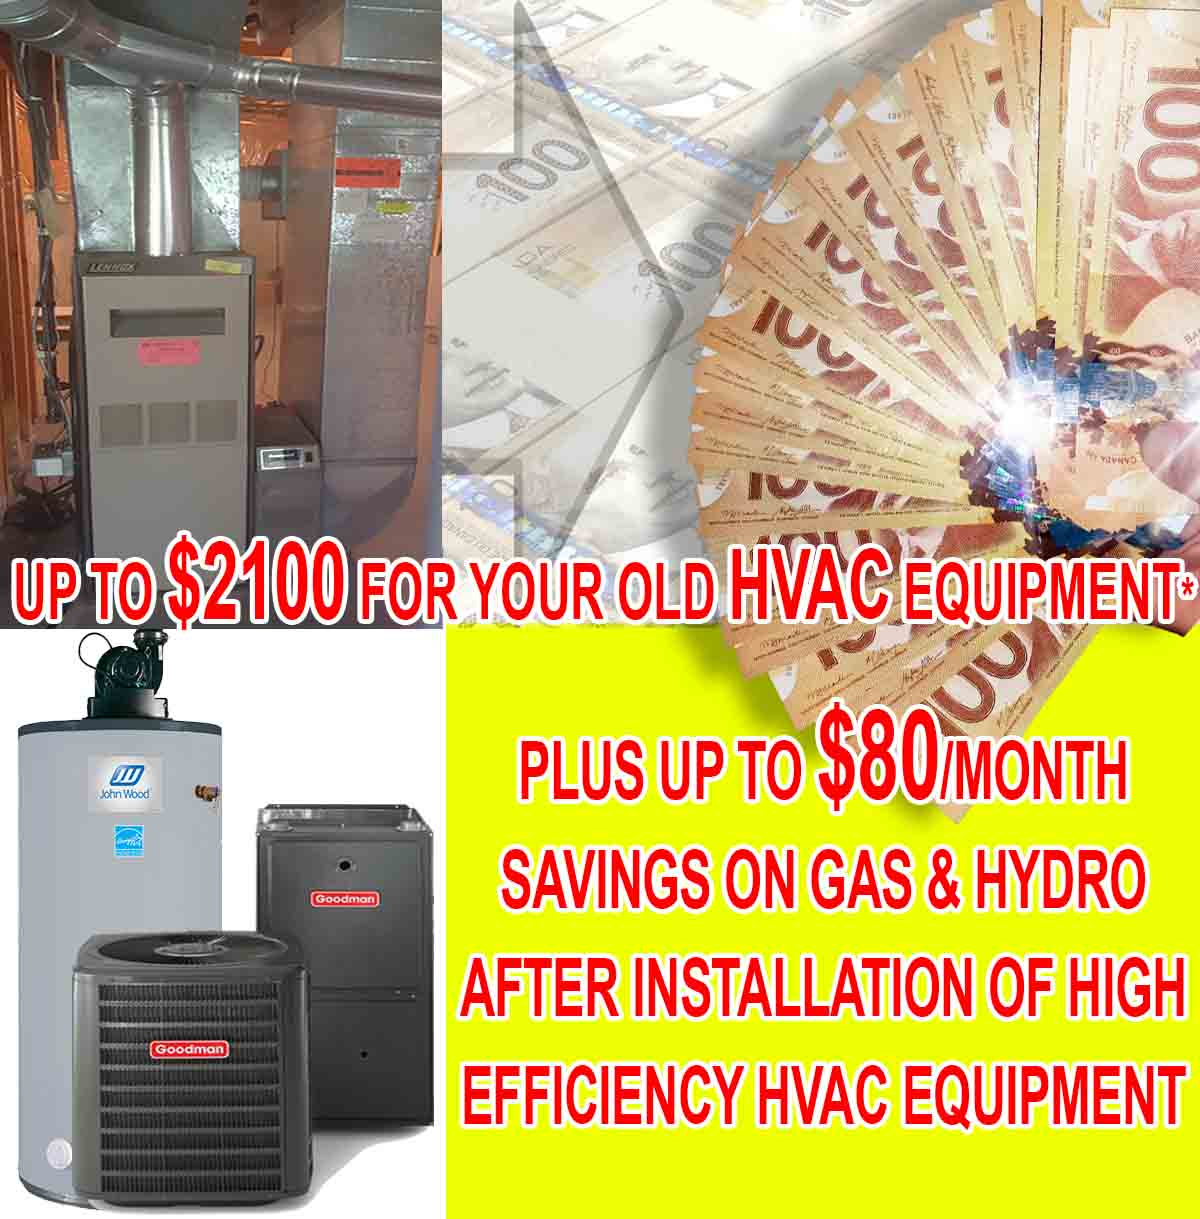 RECEIVE $2100 IN REBATES FOR YOUR FURNACE, AC, AND WATER